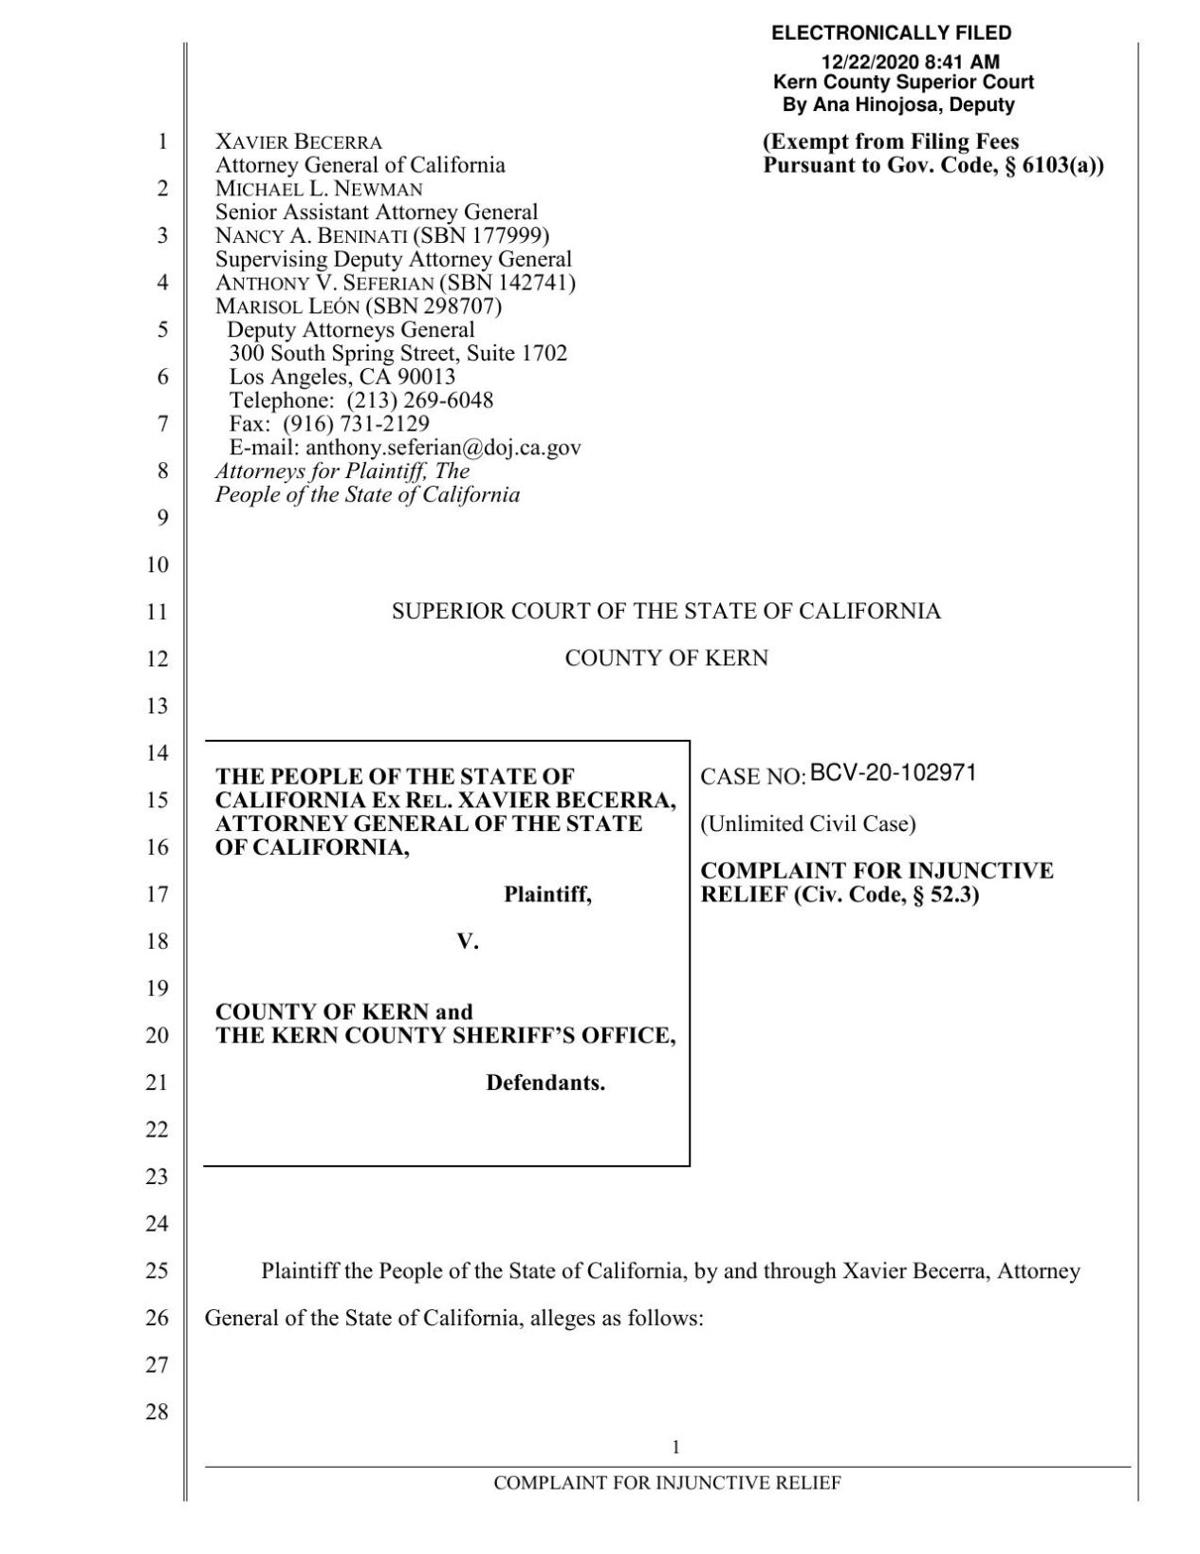 Department of Justice complaint